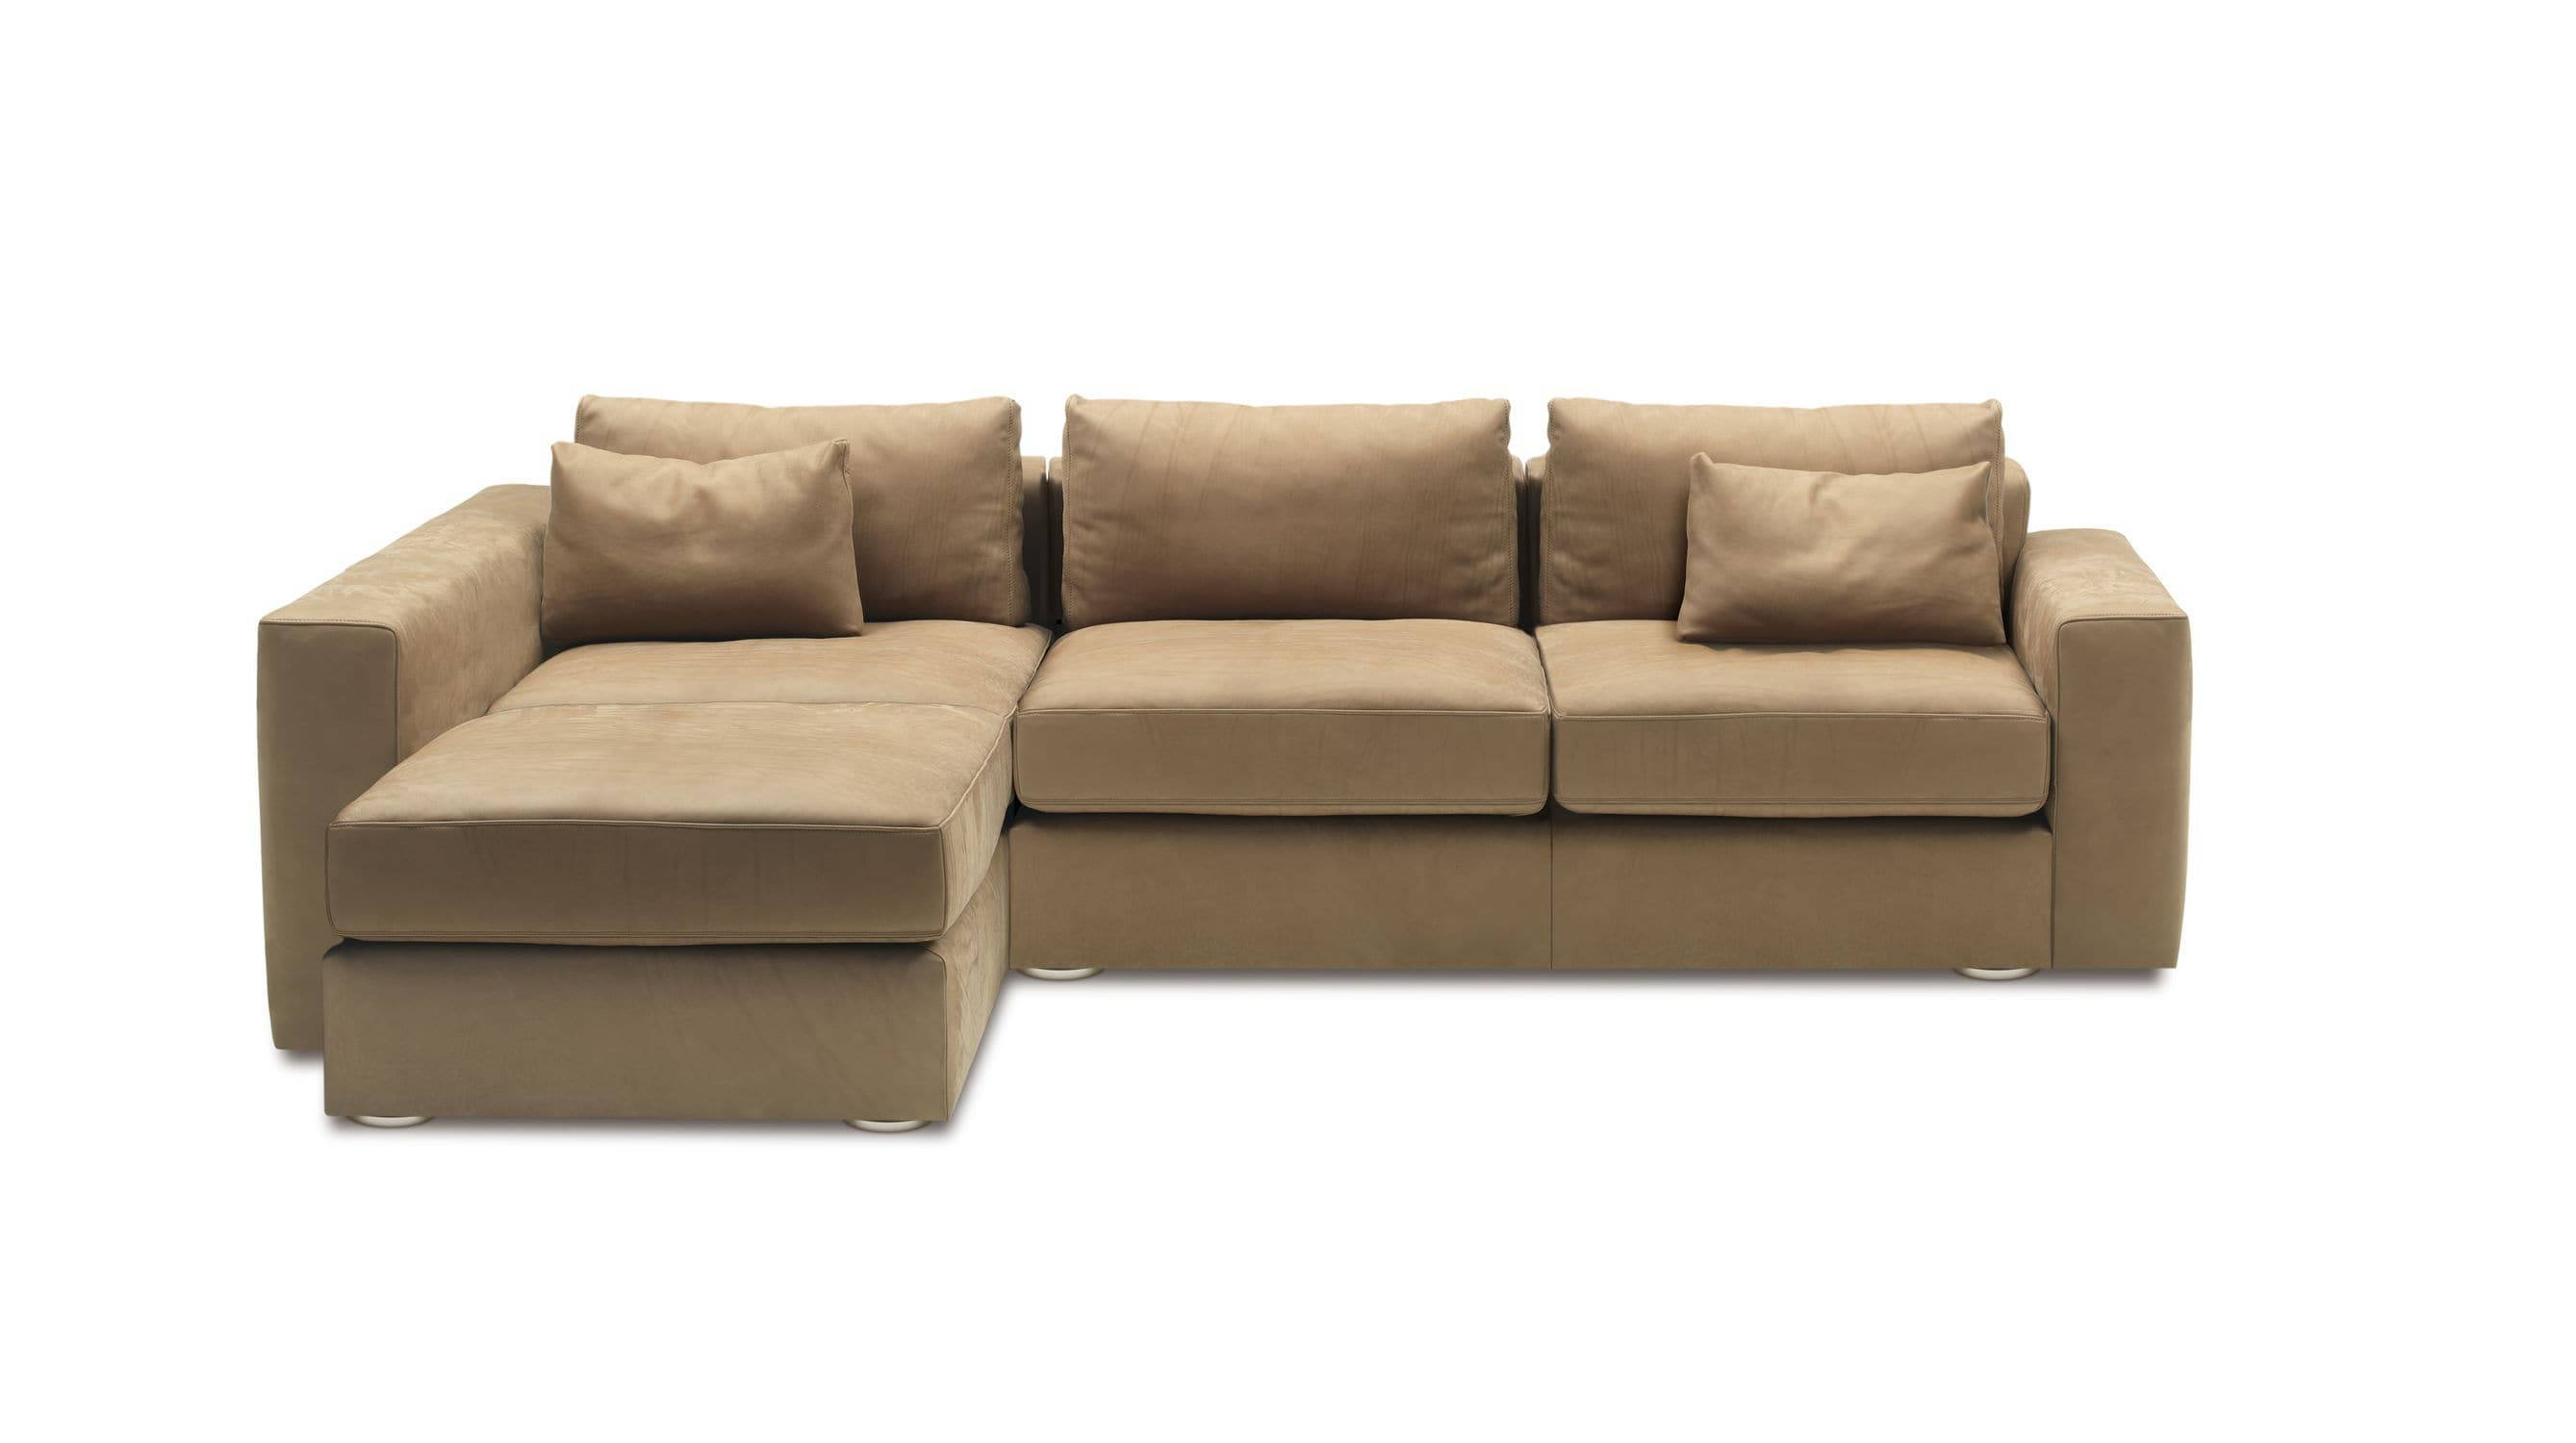 Corner Sofa / Modular / Contemporary / Leather - Ds-247Gordon throughout Modular Corner Sofas (Image 15 of 30)